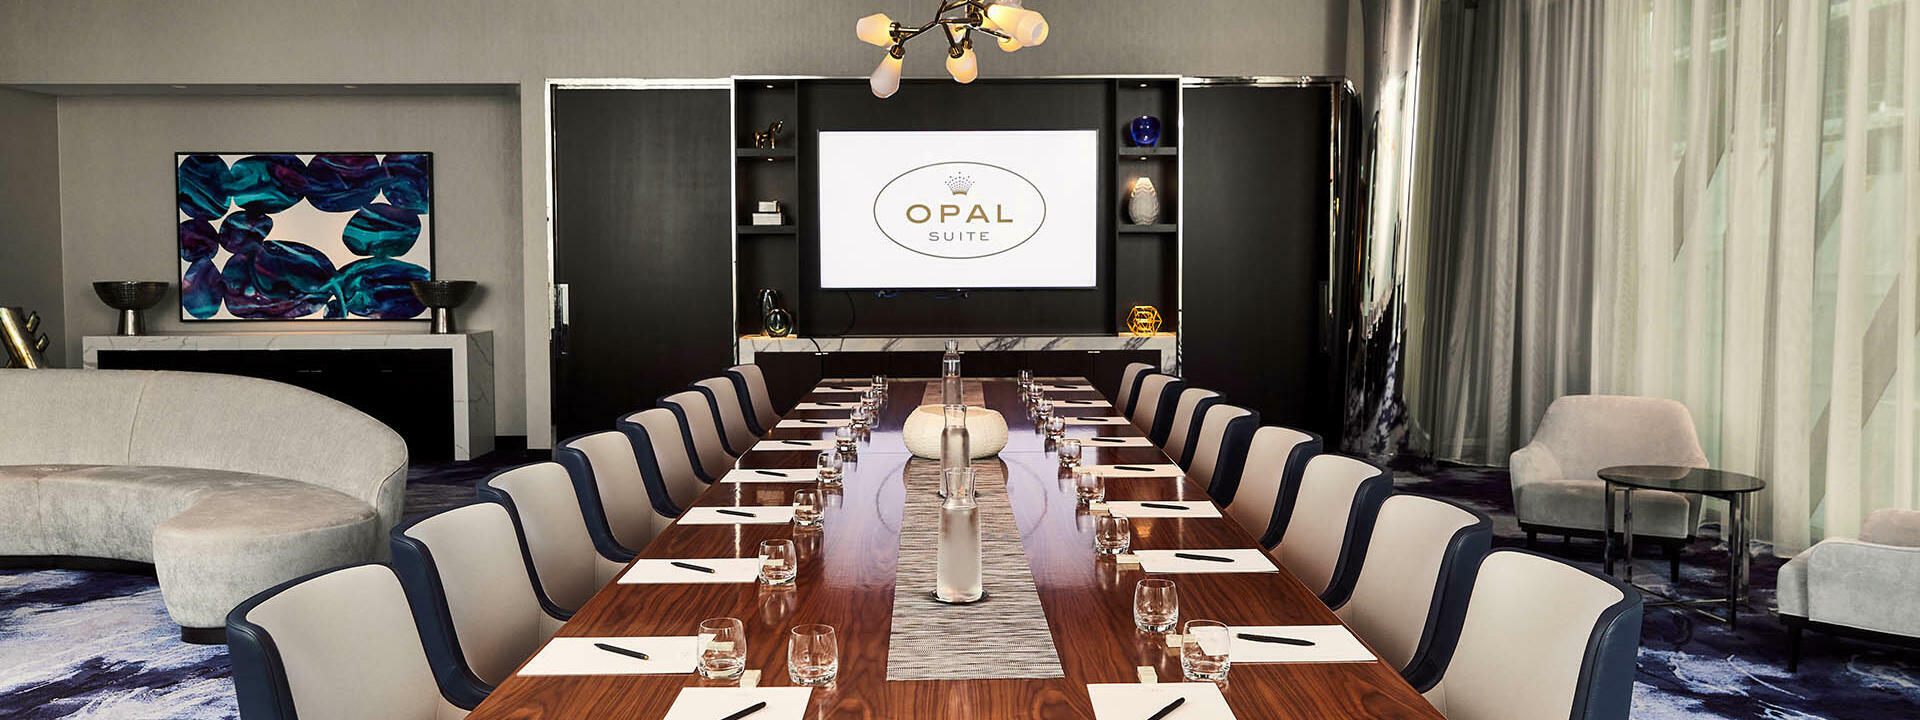 Opal Suite event room at Crown Towers Sydney